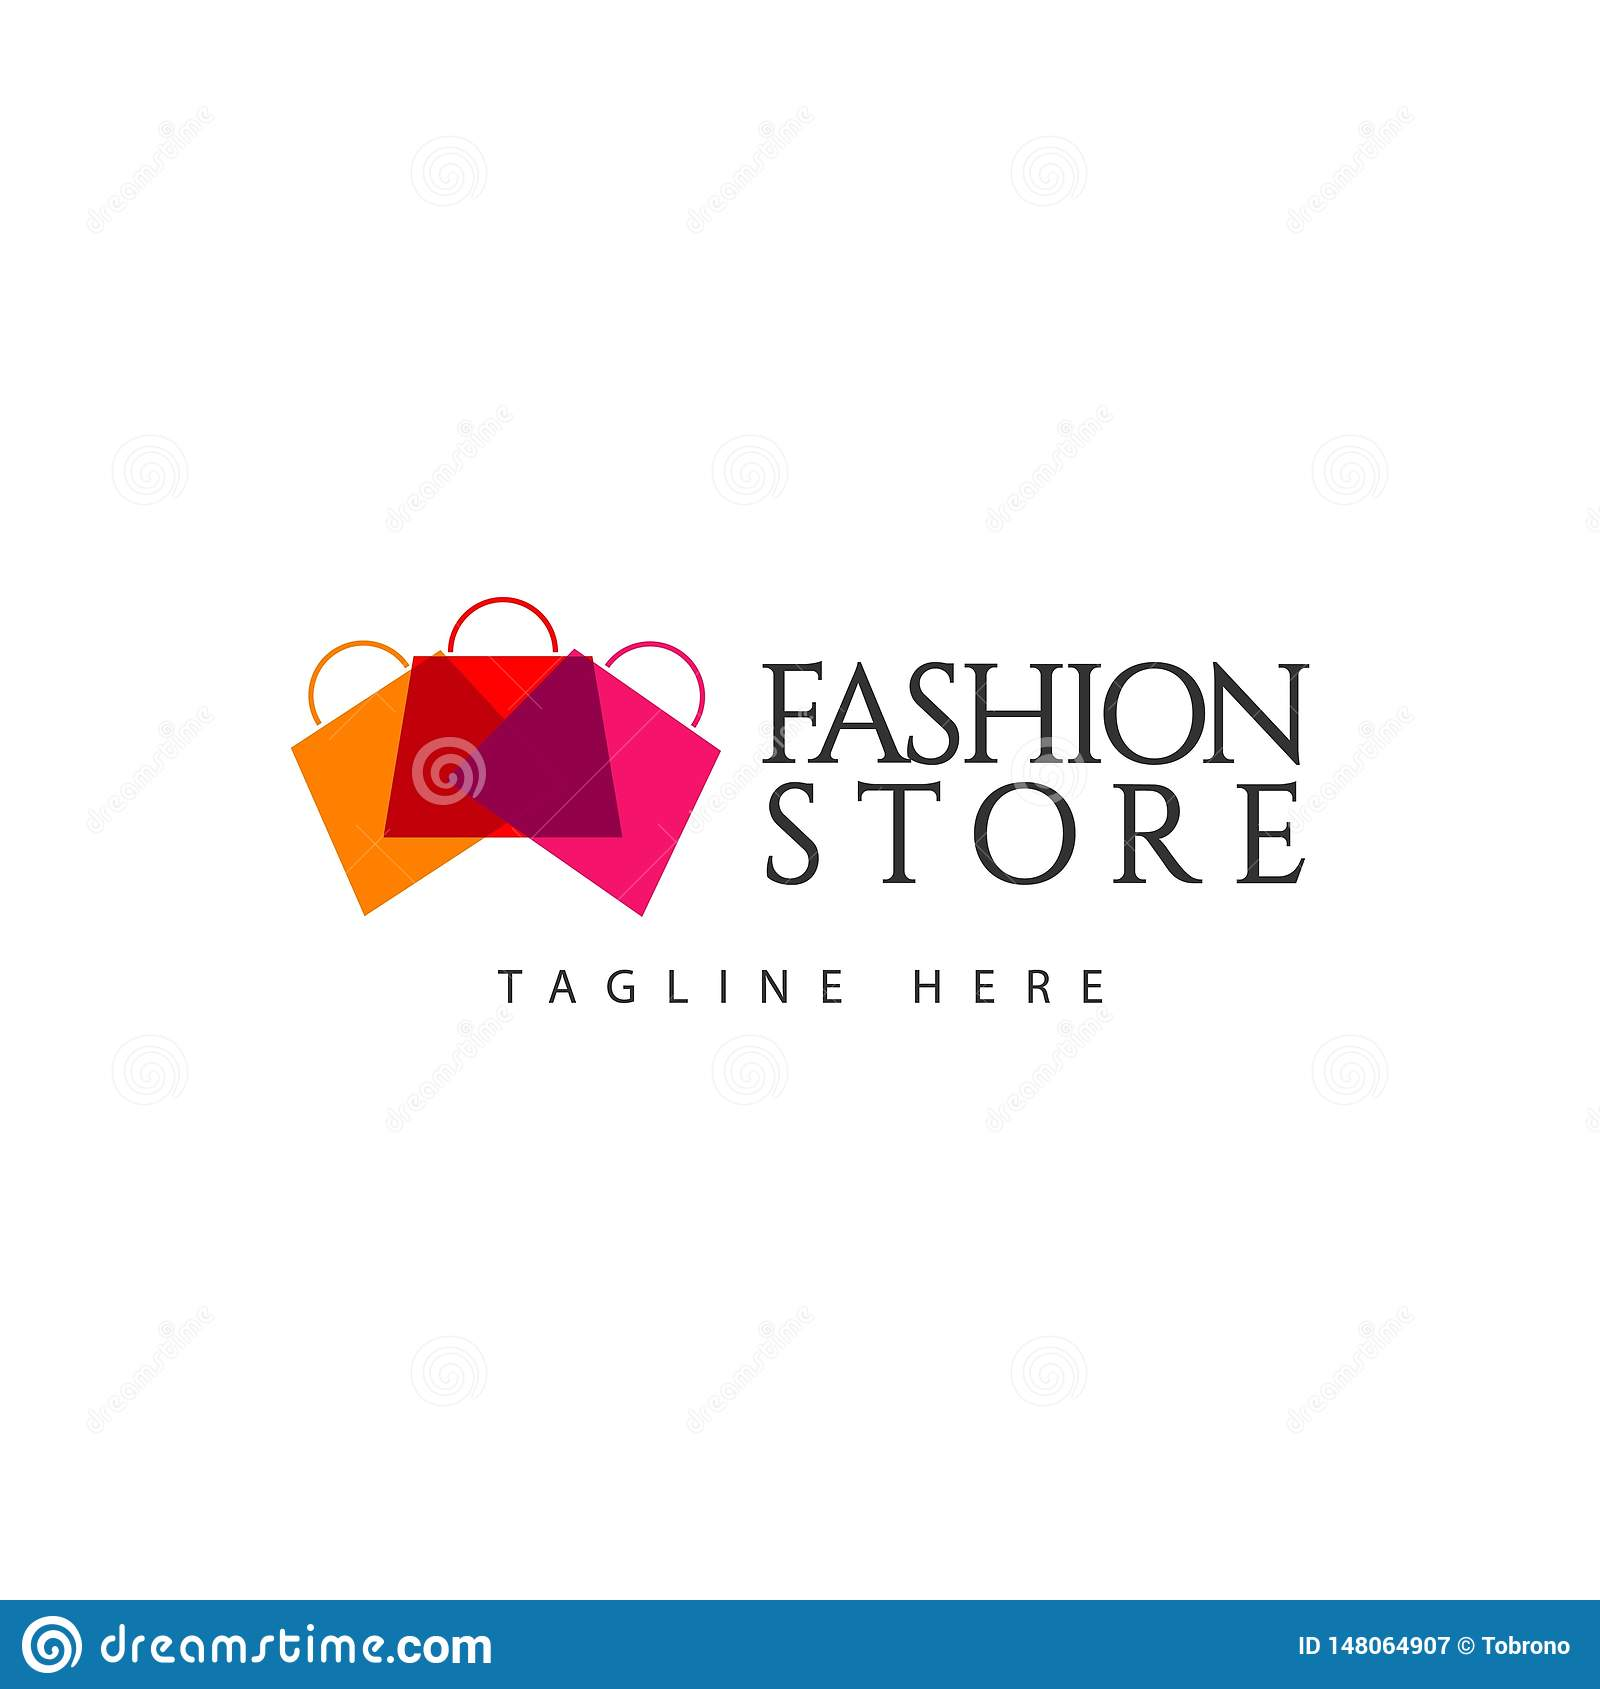 Fashion Store Logo Vector Template Design Illustration Stock Vector Illustration Of Black Clothes 148064907